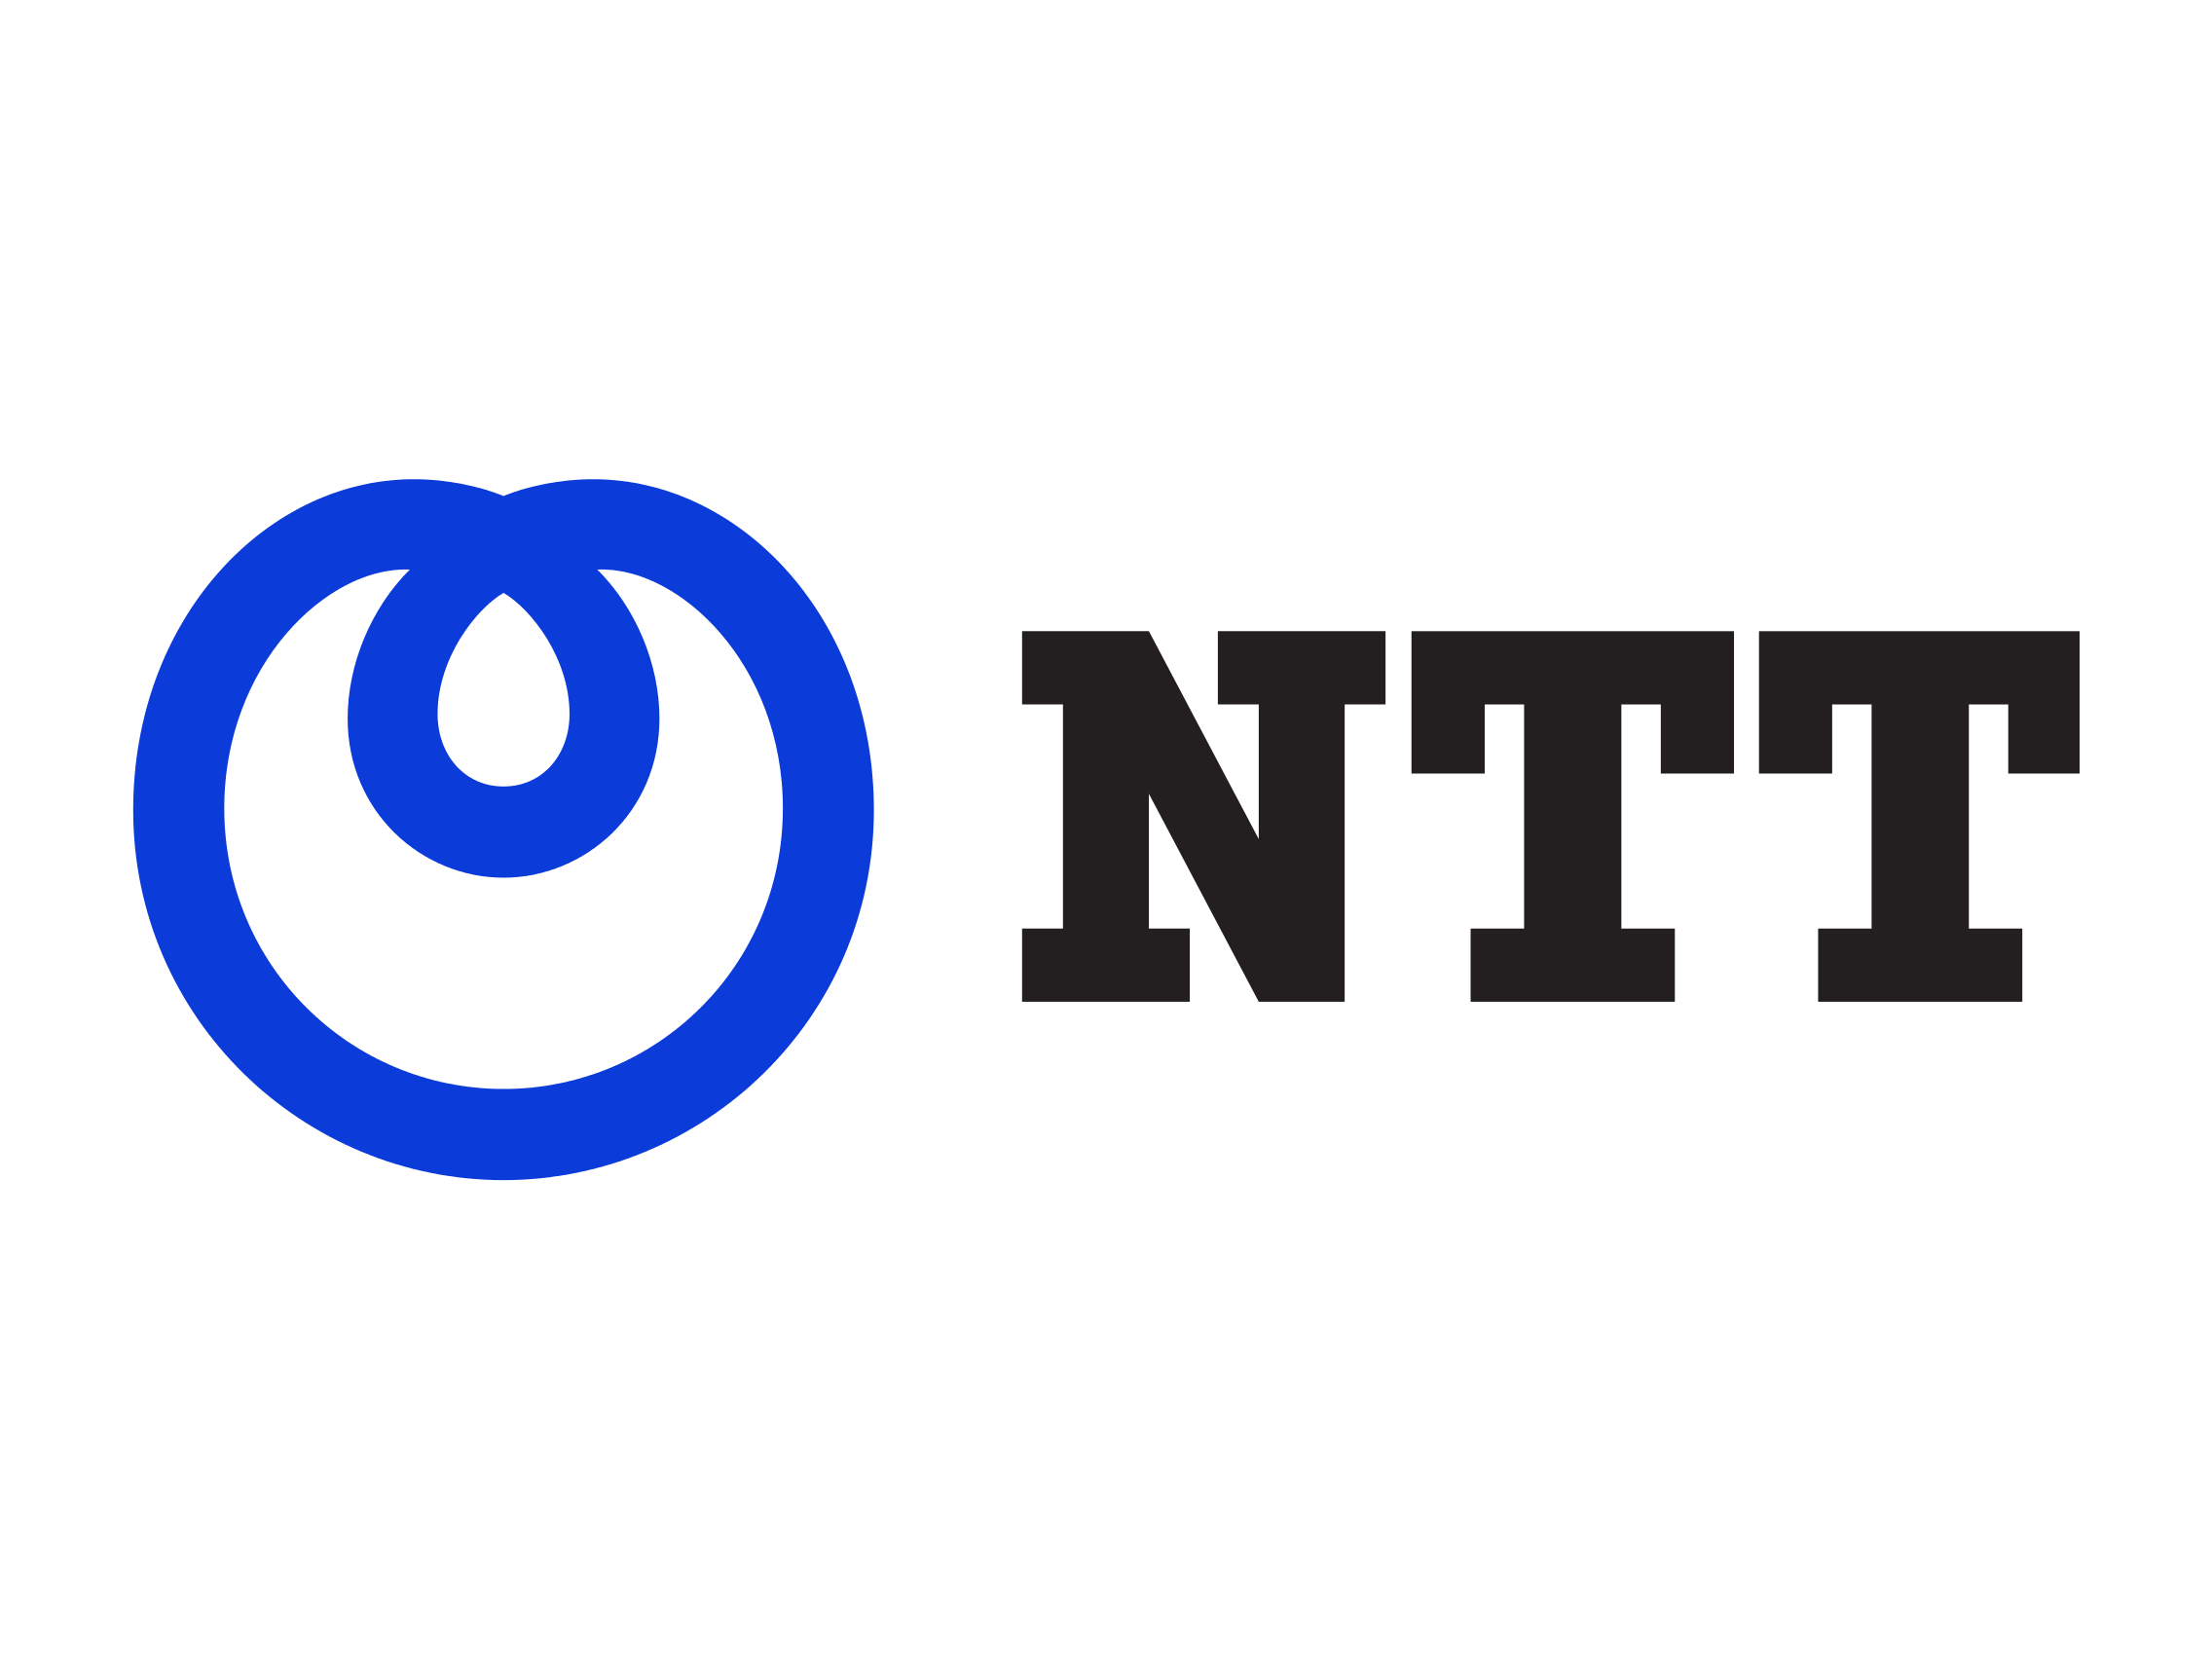 NTT use case logo